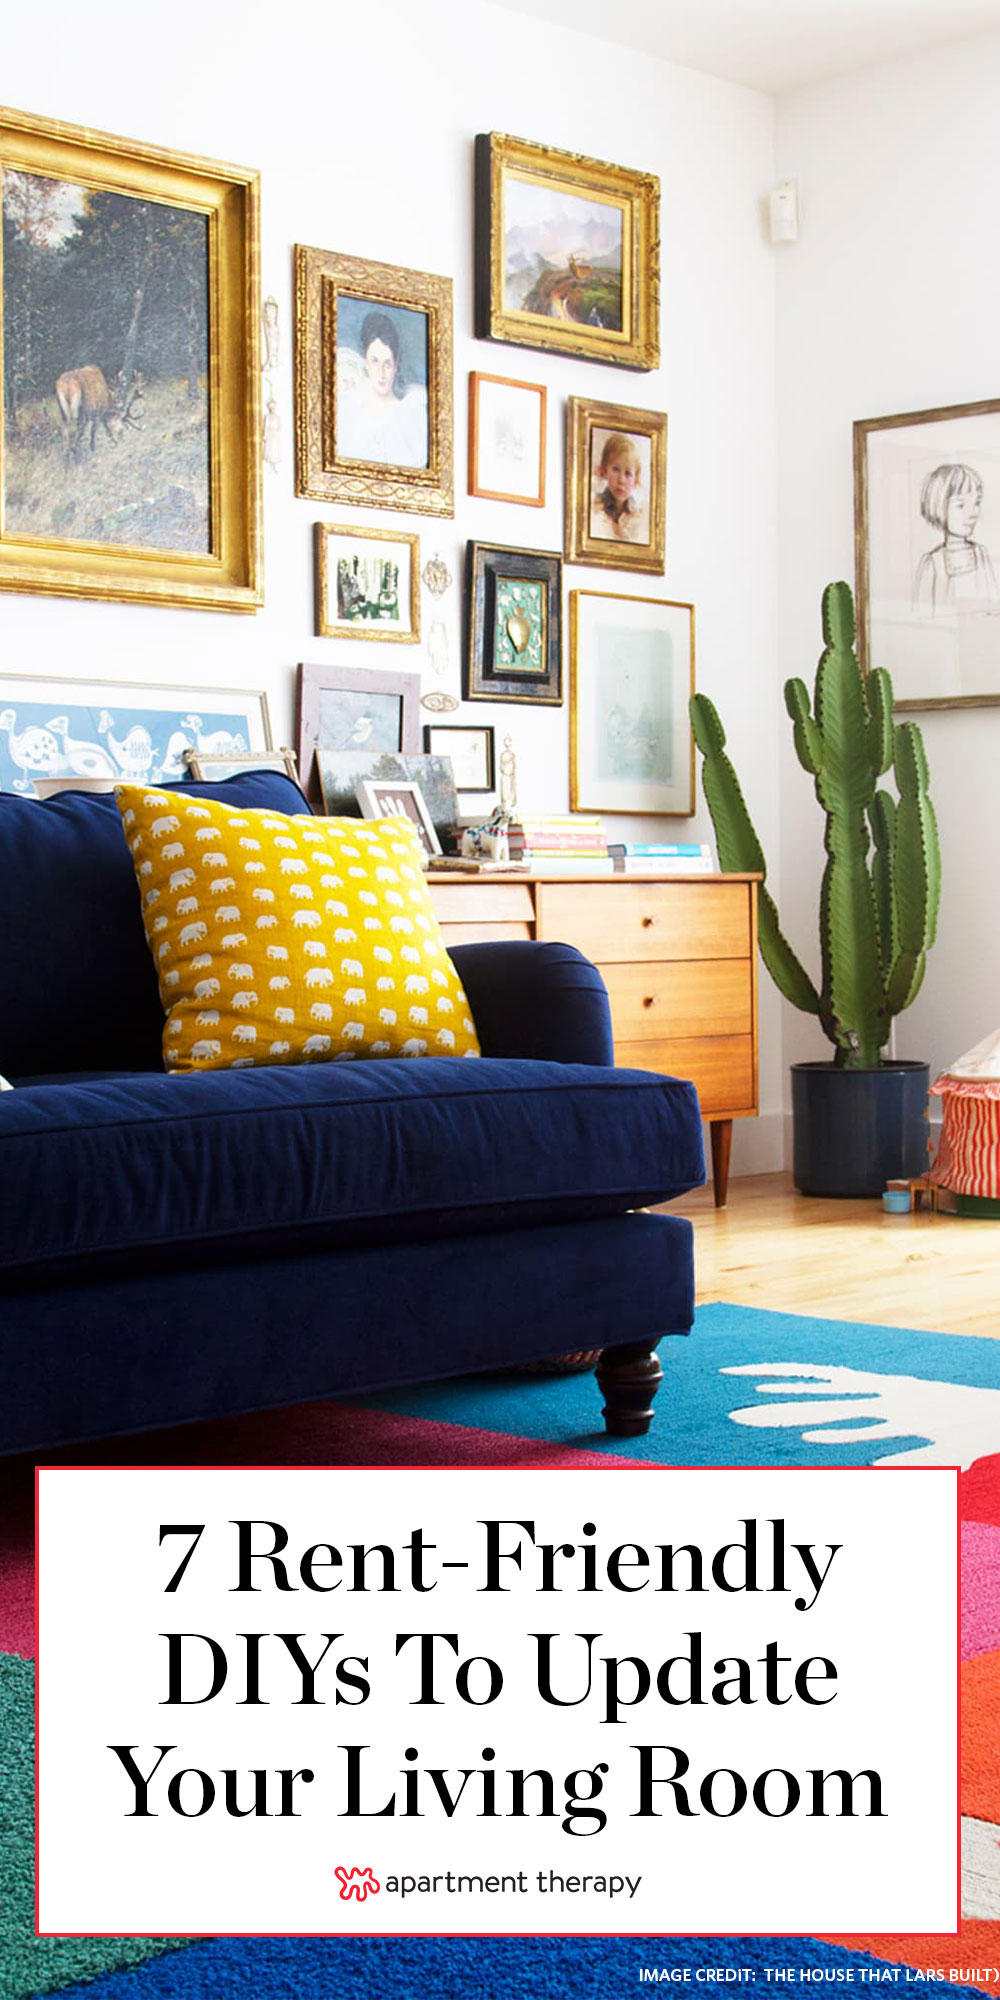 High Impact Living Room Diy Ideas For Renters Apartment Therapy